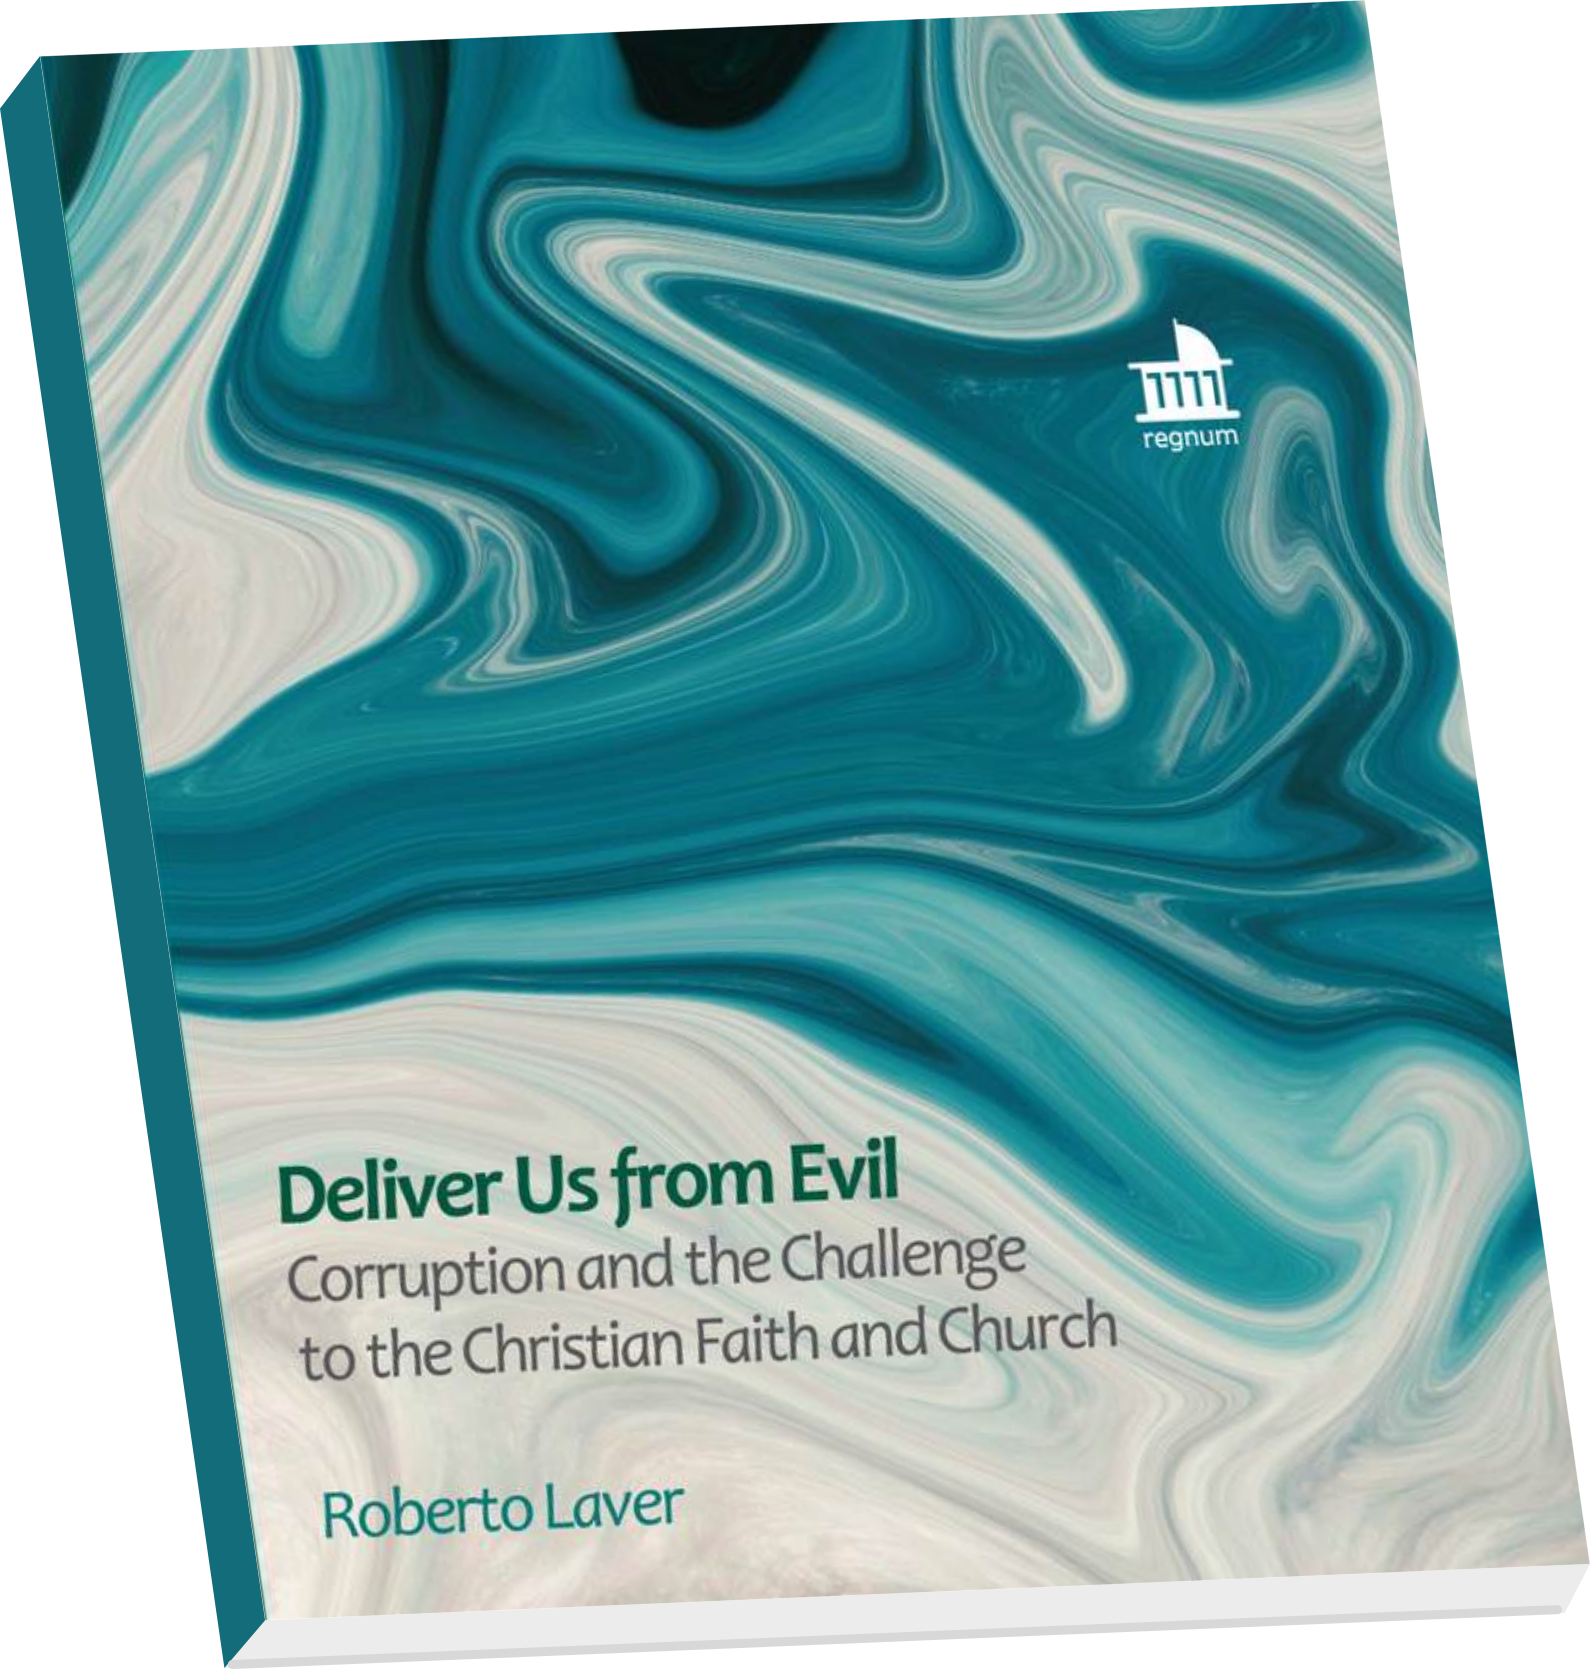 Deliver Us from Evil, by Roberto Laver